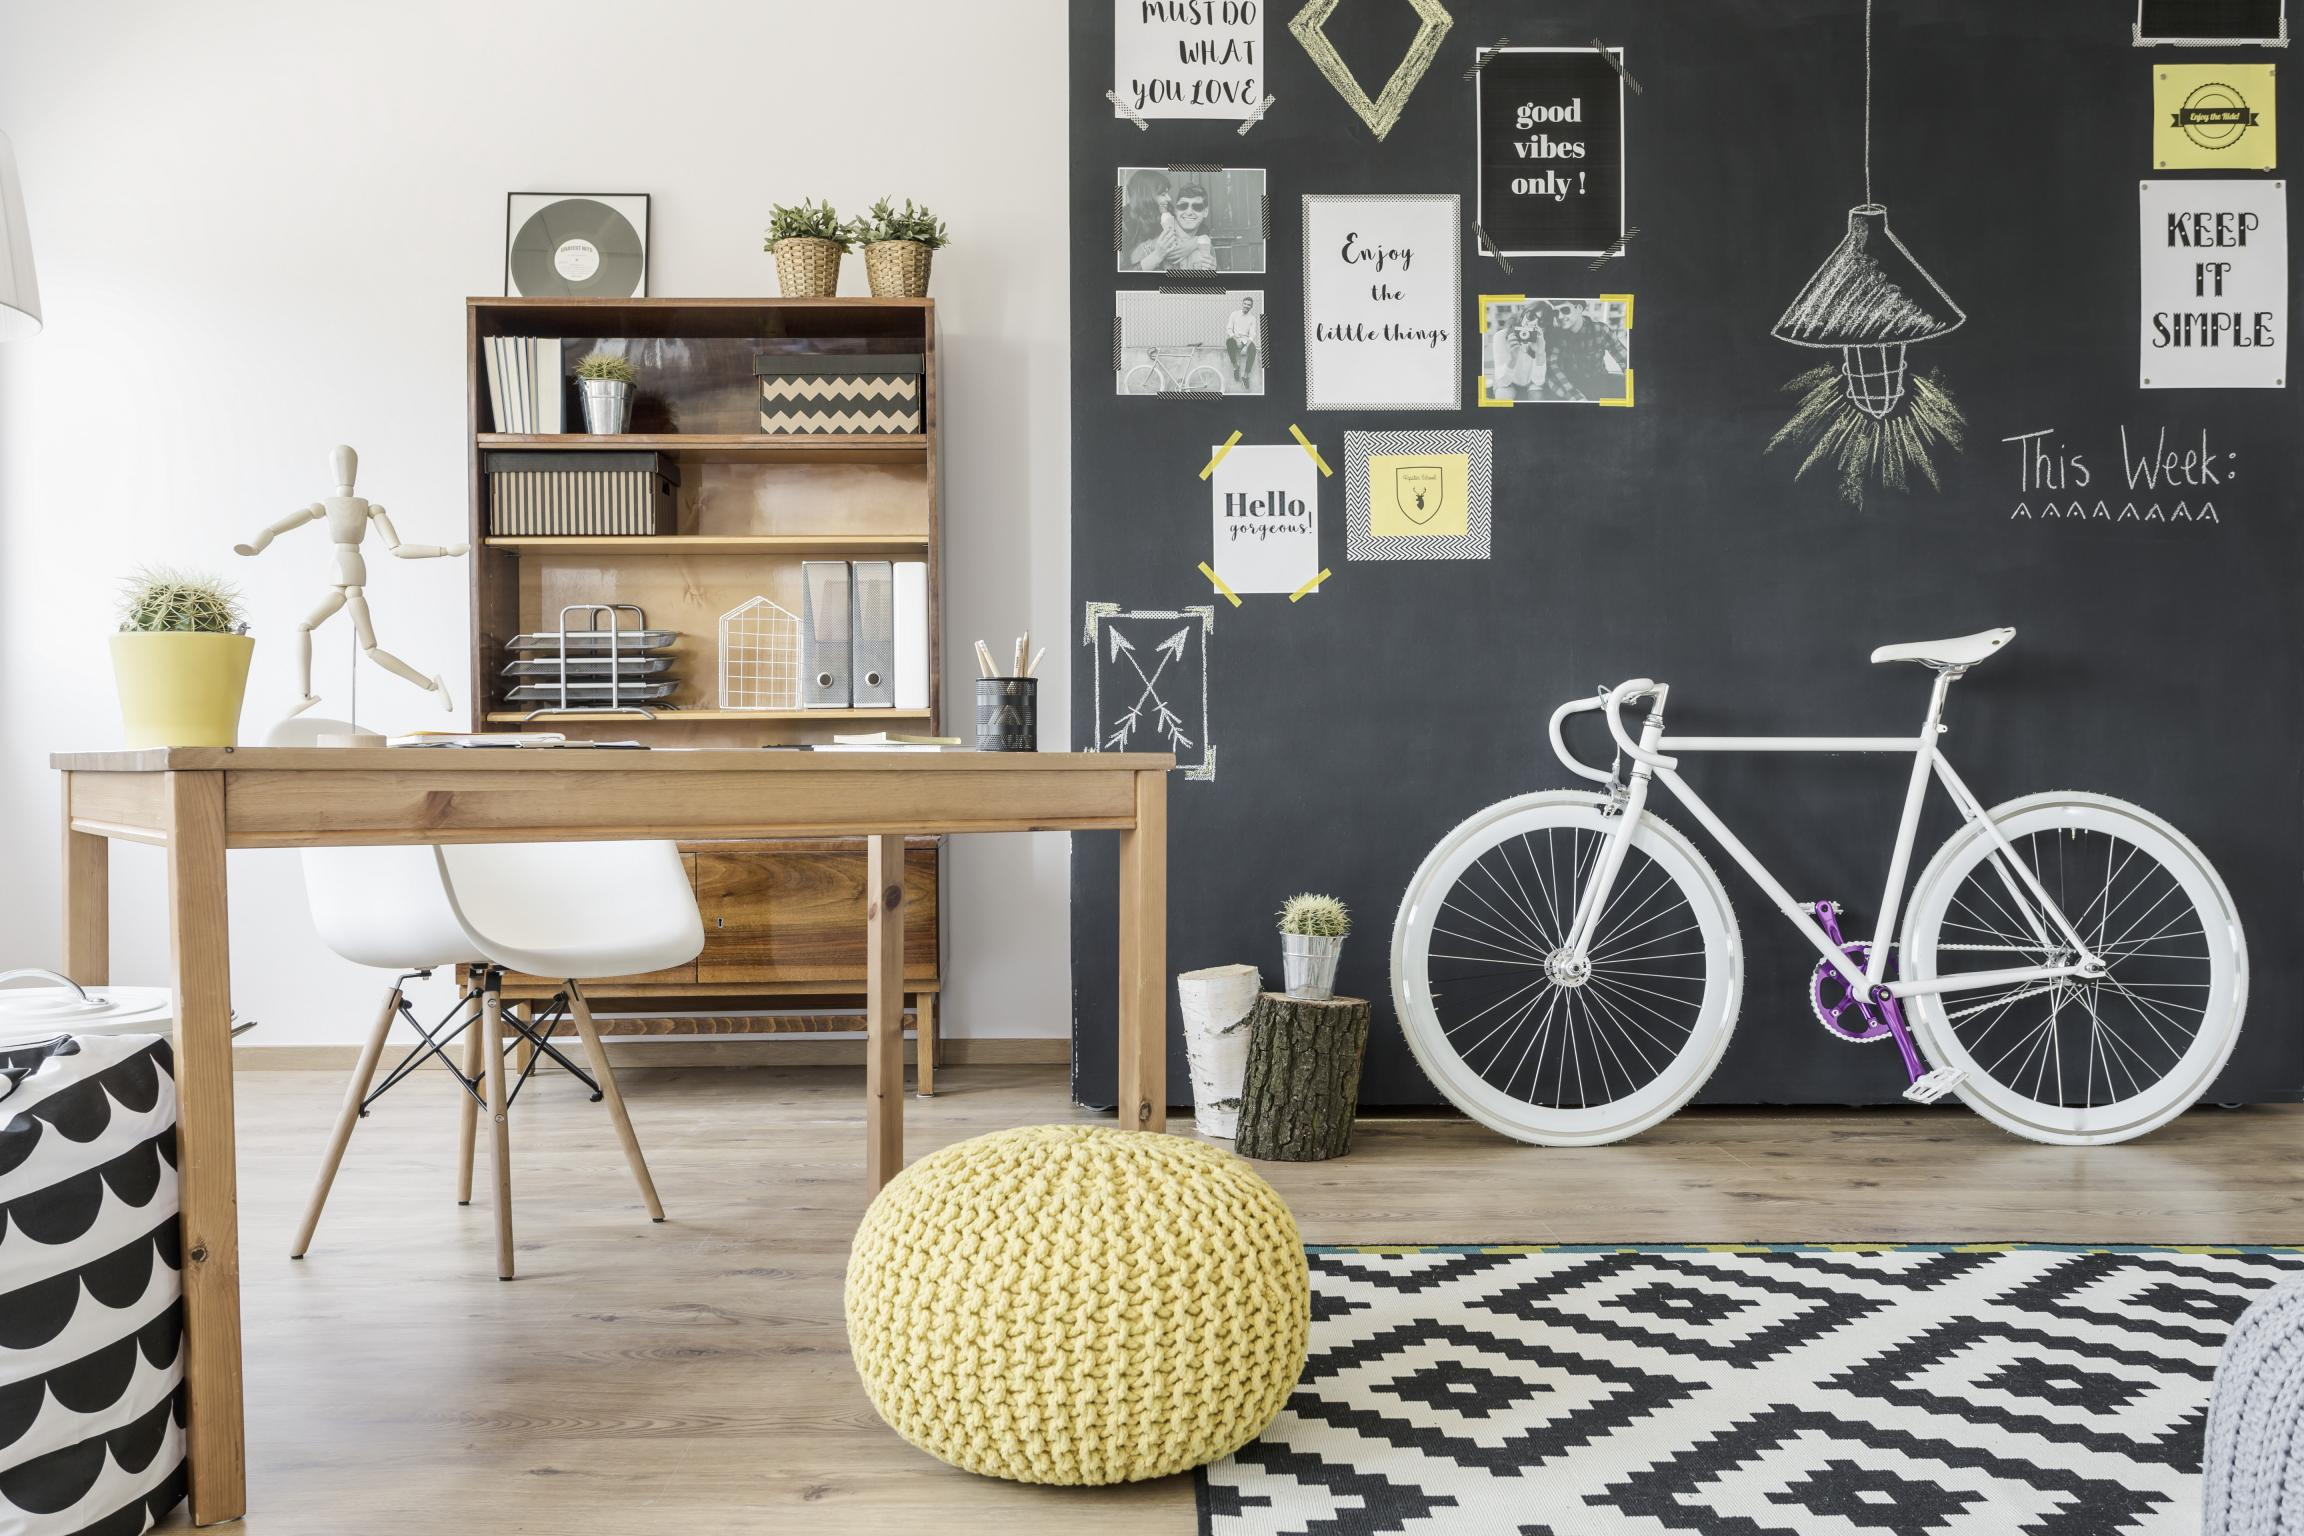 Chair Bike Modern Home Space With Chalkboard Wall Bike Pouffe Pattern